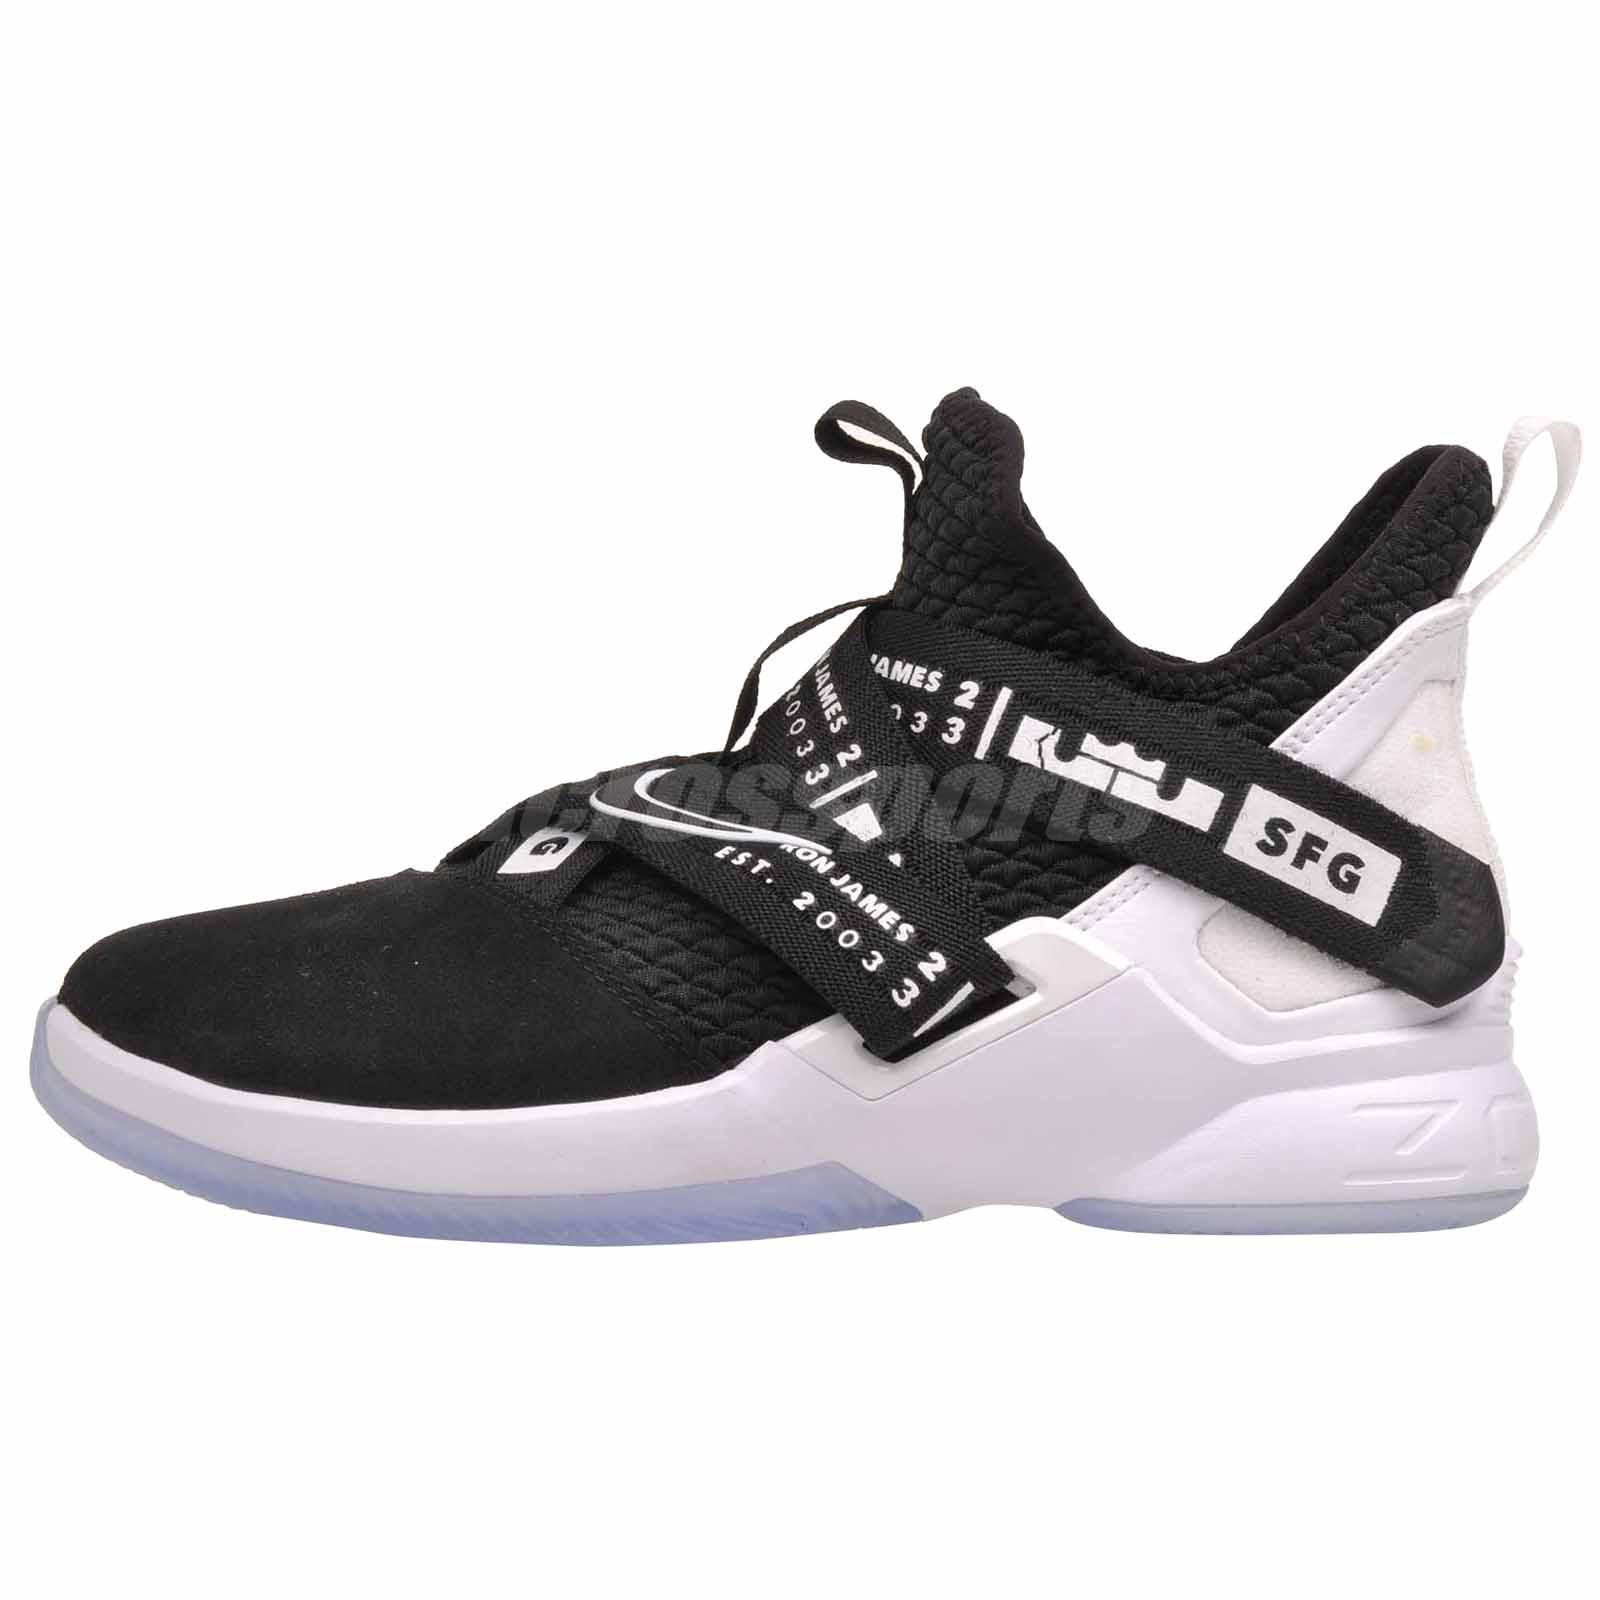 new product a7088 12aa1 Details about Nike LeBron Soldier XII GS Basketball Kids Youth Shoes Black  White AA1352-005